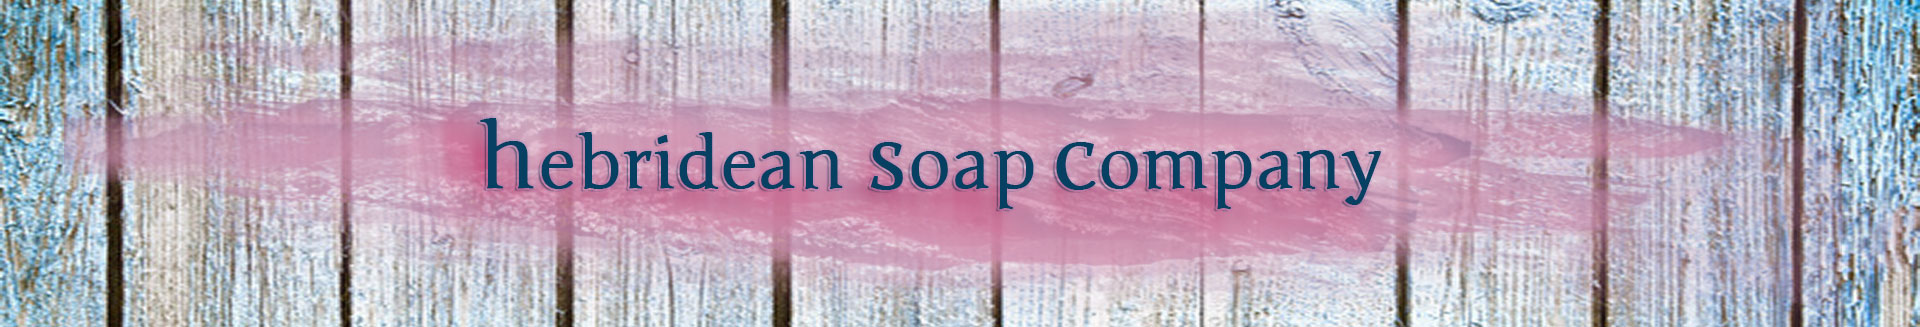 Hebridean Soap Company